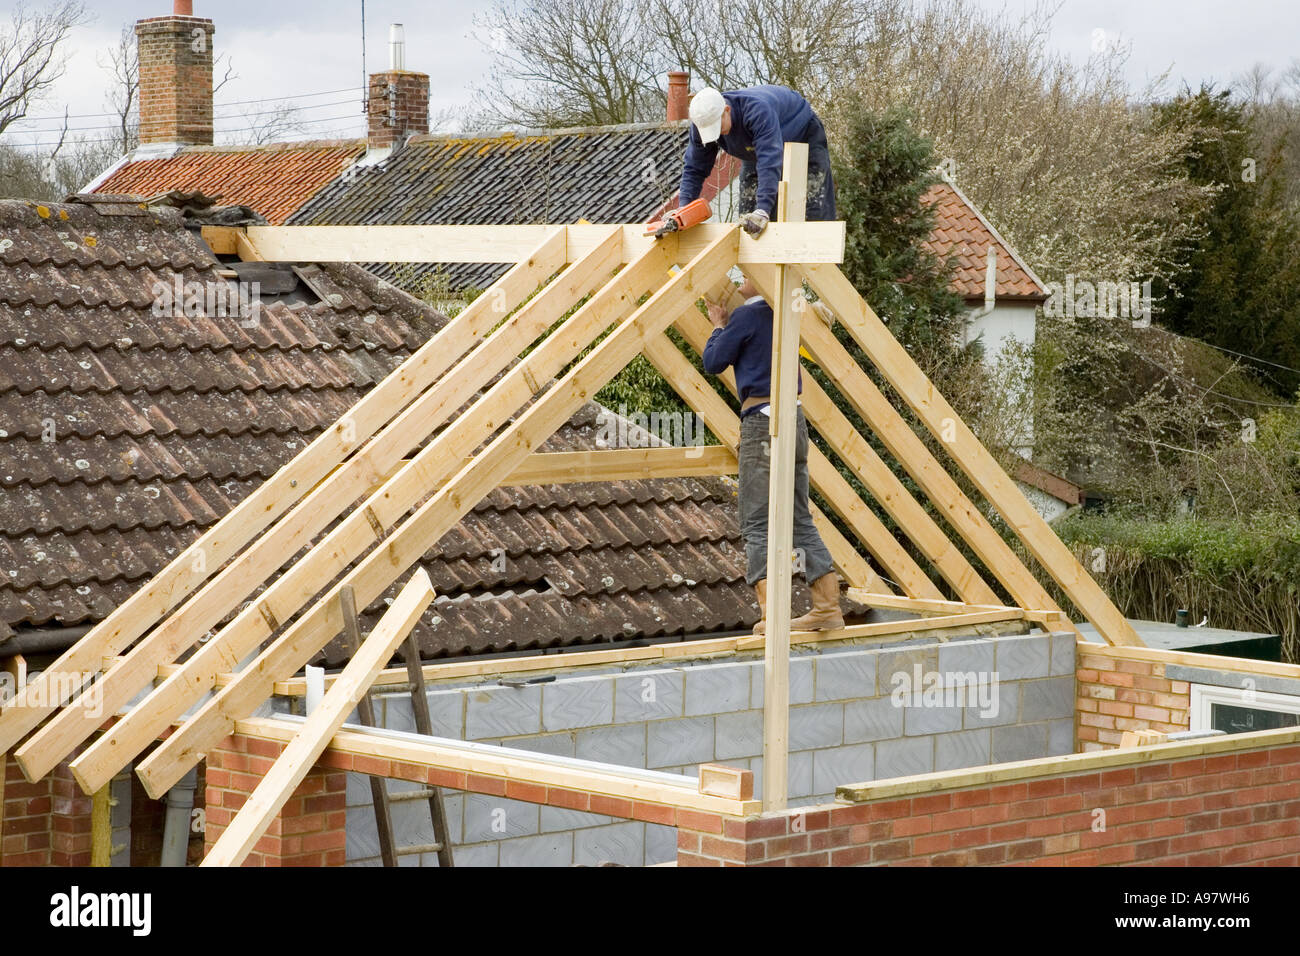 Nice Stock Photo   Builders Contructing A New Roof For An Extension To A Home